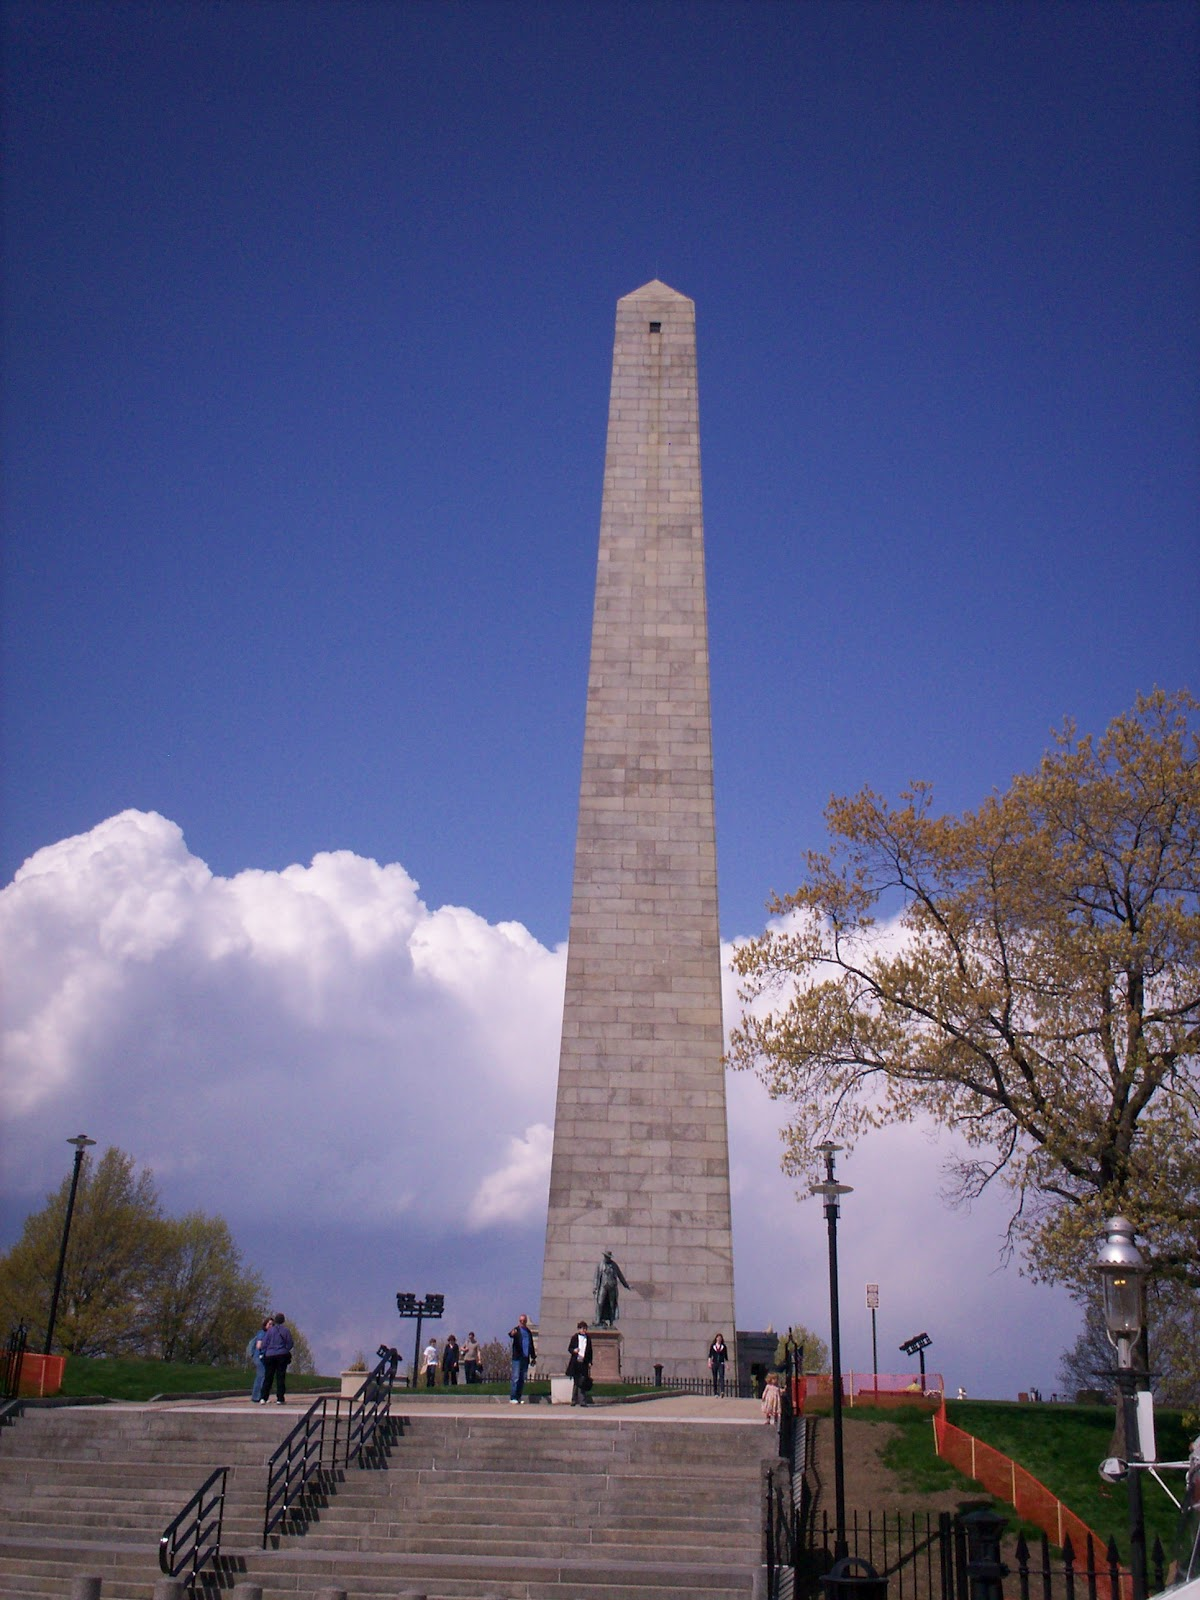 new england travels bunker hill monument charlestown massachusetts bunker hill monument charlestown massachusetts